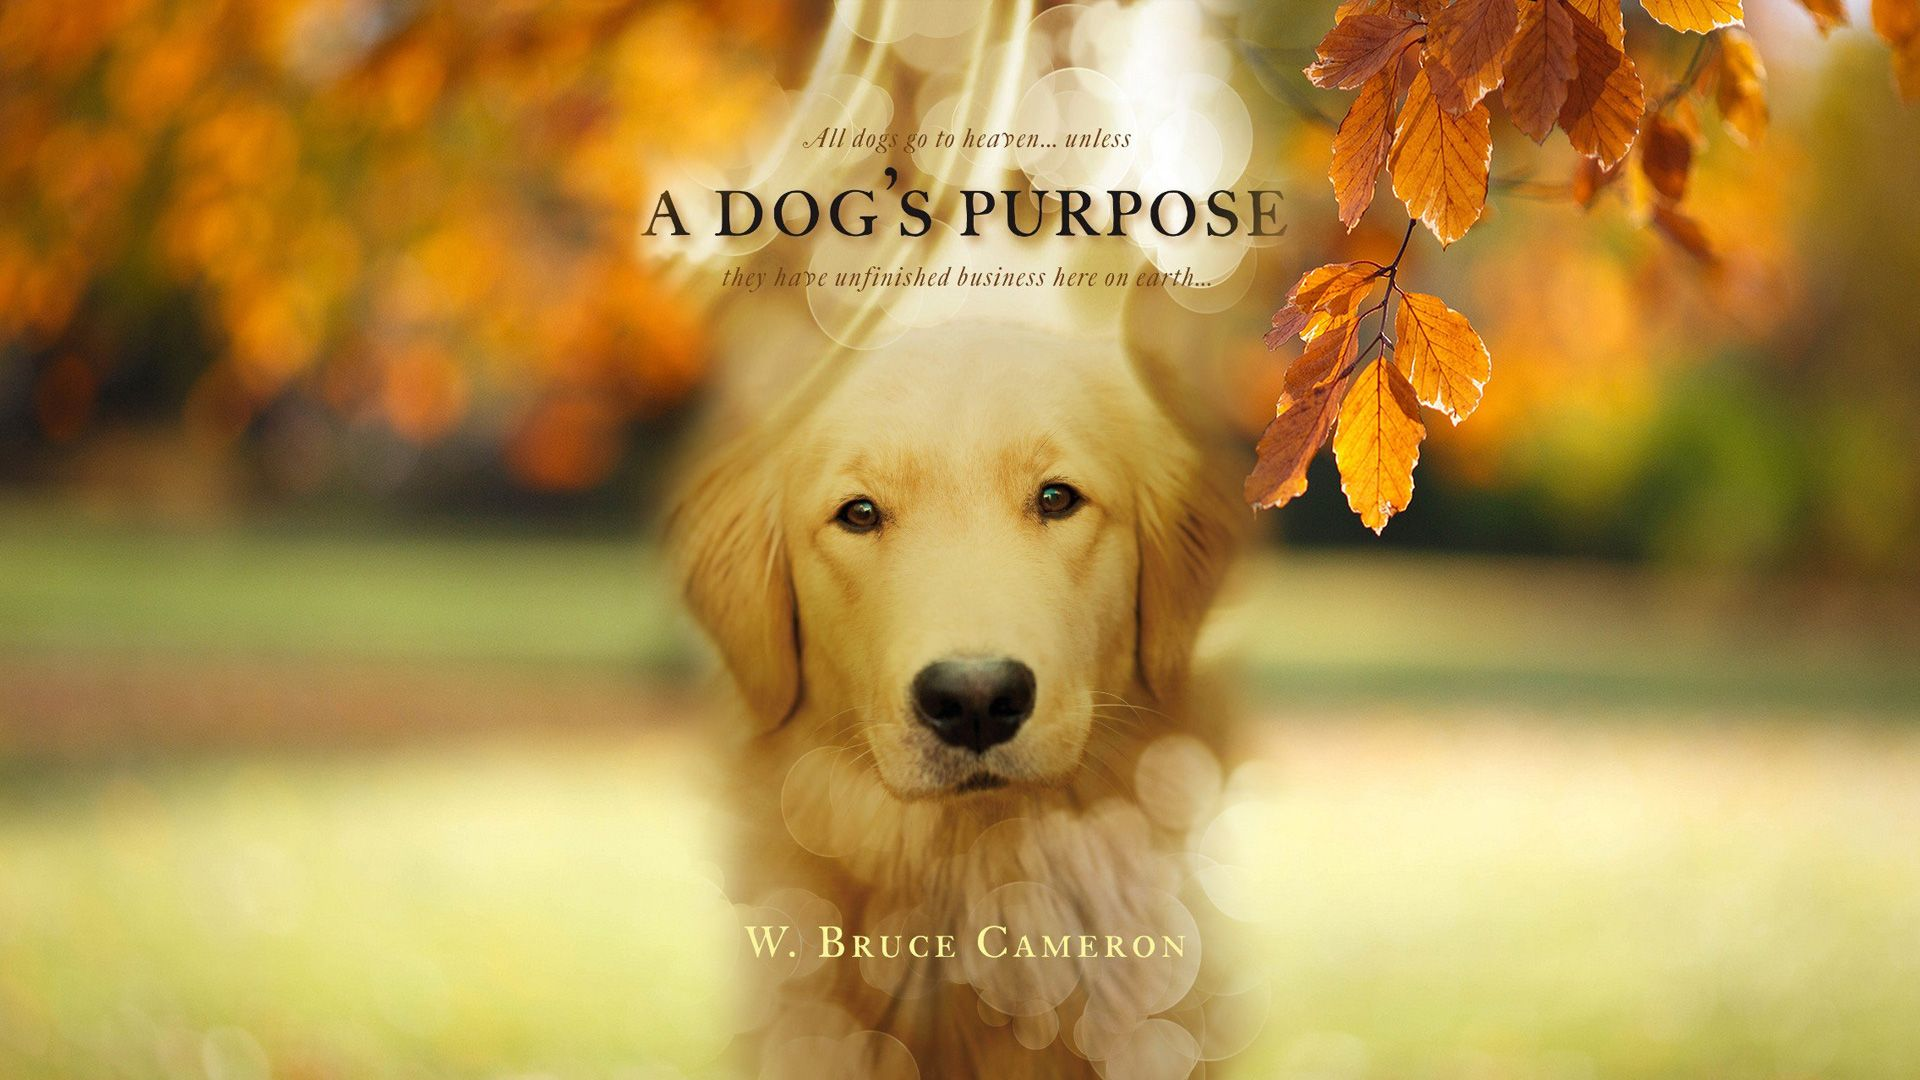 A Dog's Purpose Movie wallpaper HD film 2017 poster image Free HD ...